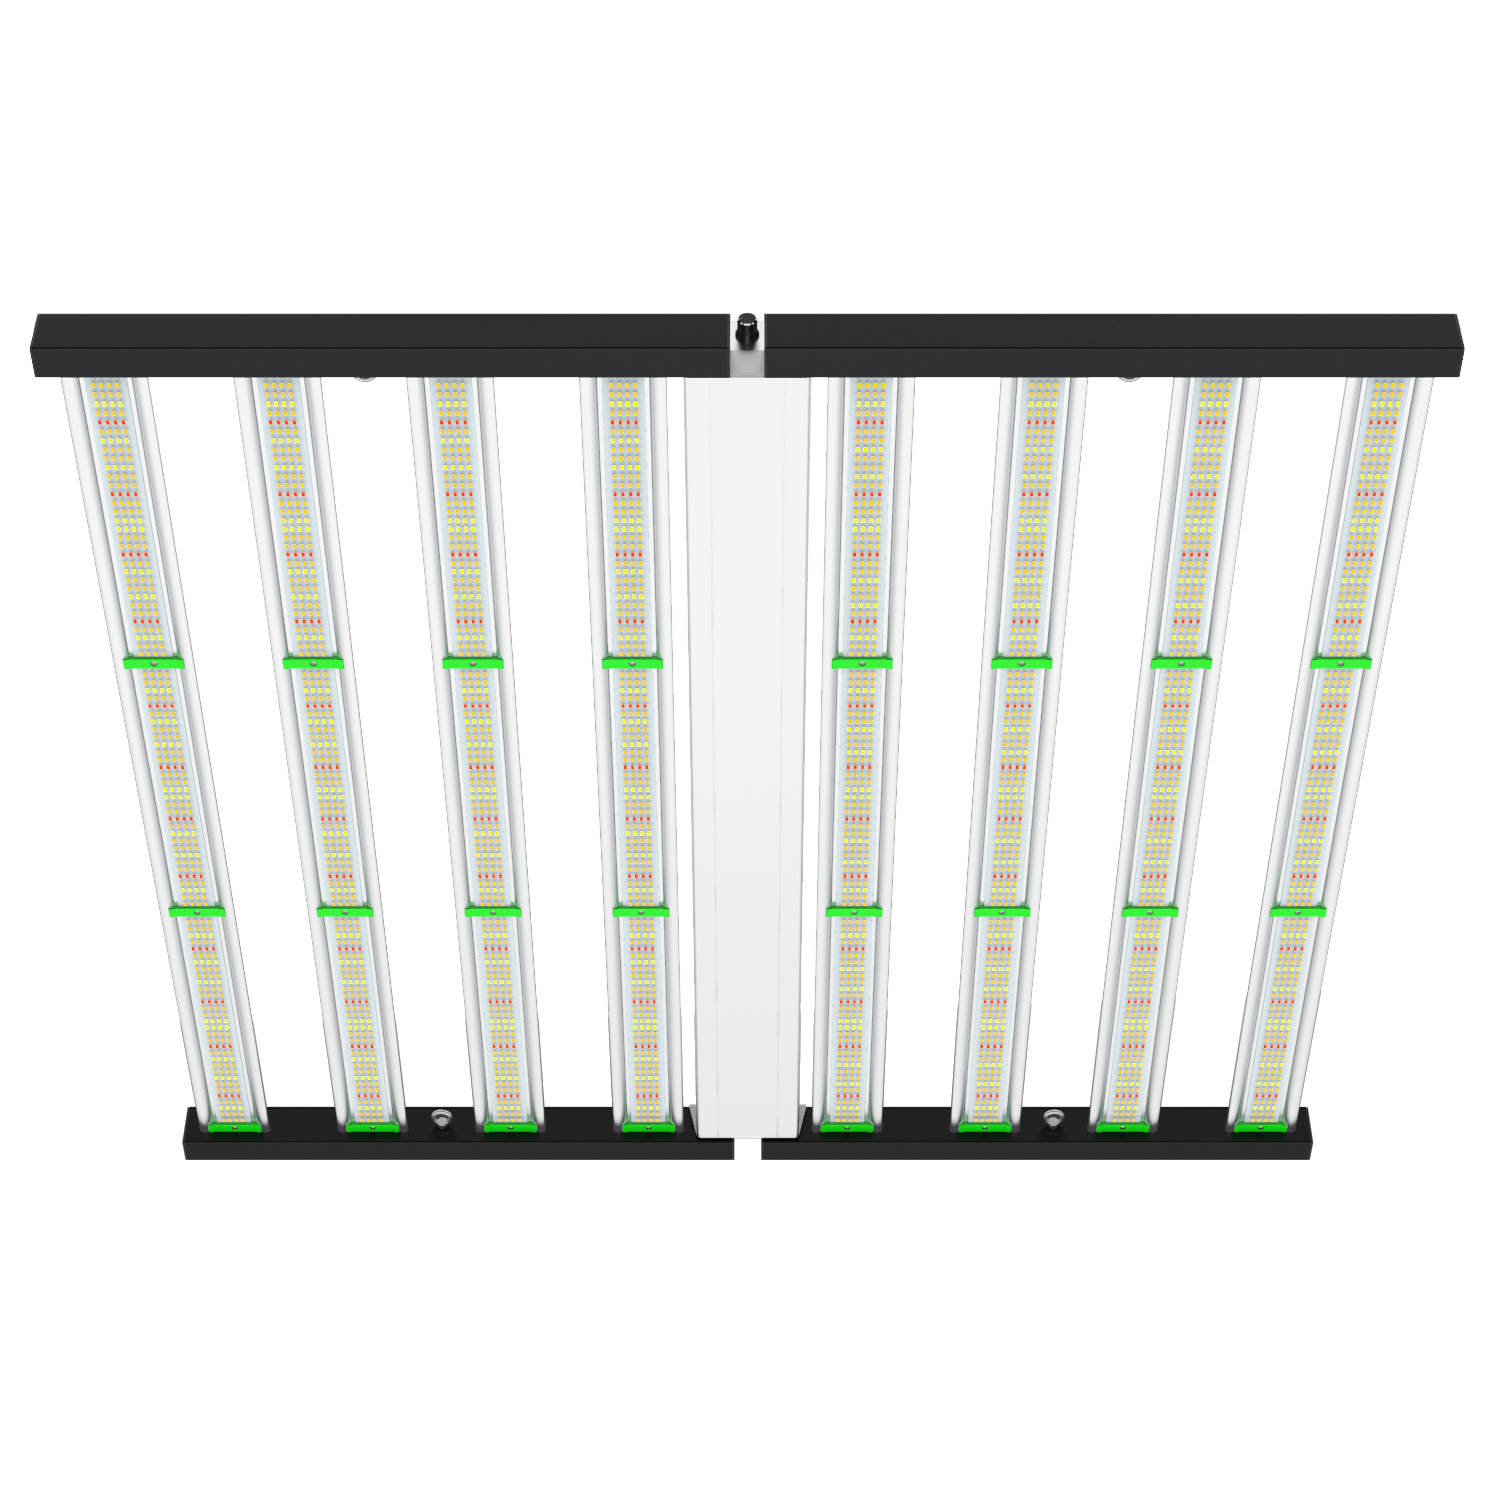 Gavita Pro 1700e Replacement Phlizon Folding LED Grow Light with High Efficacy and Output